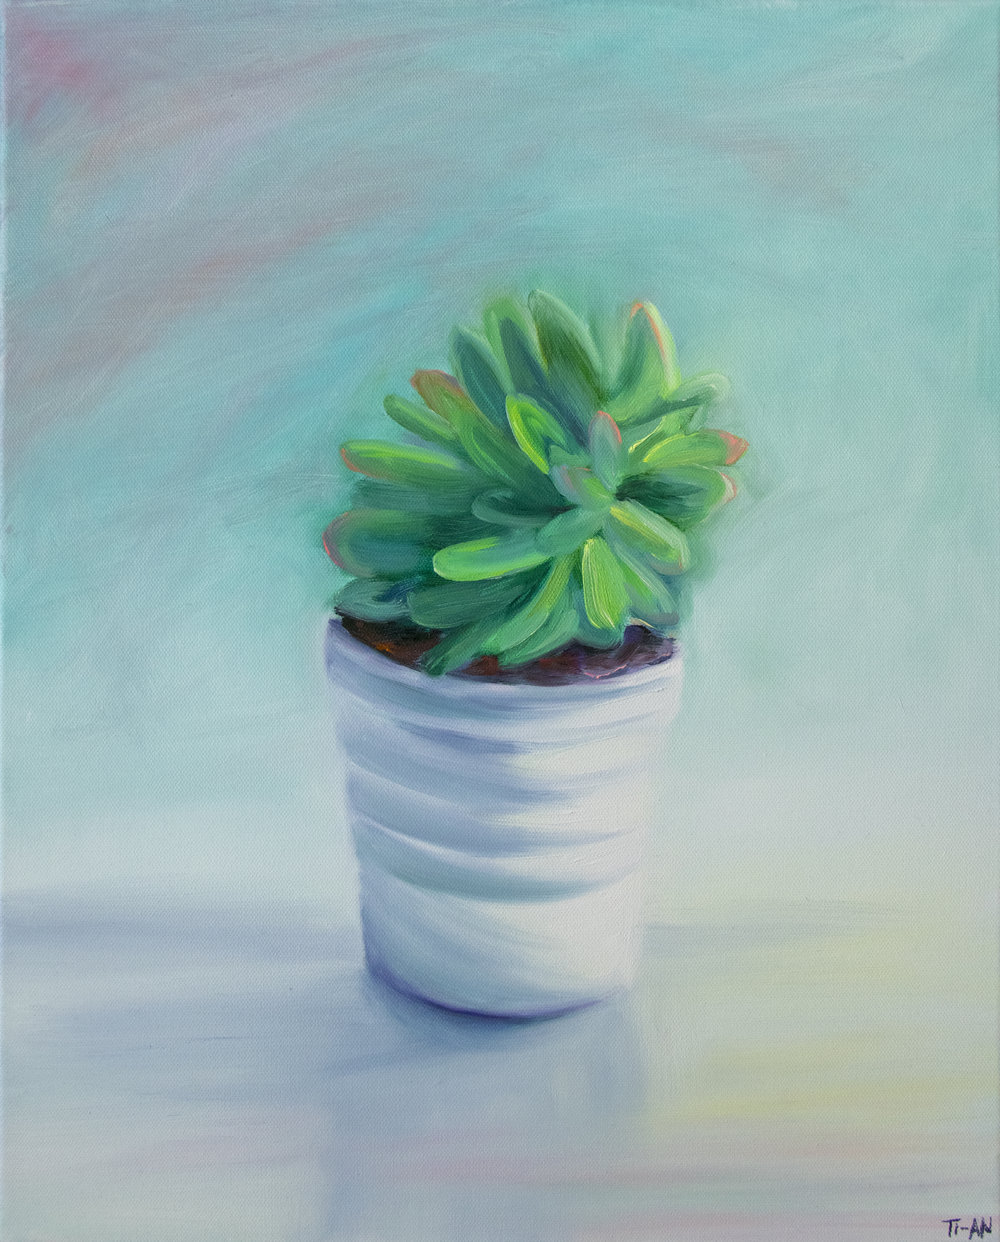 The Succulent by the Window   16x20, oil on canvas  2018